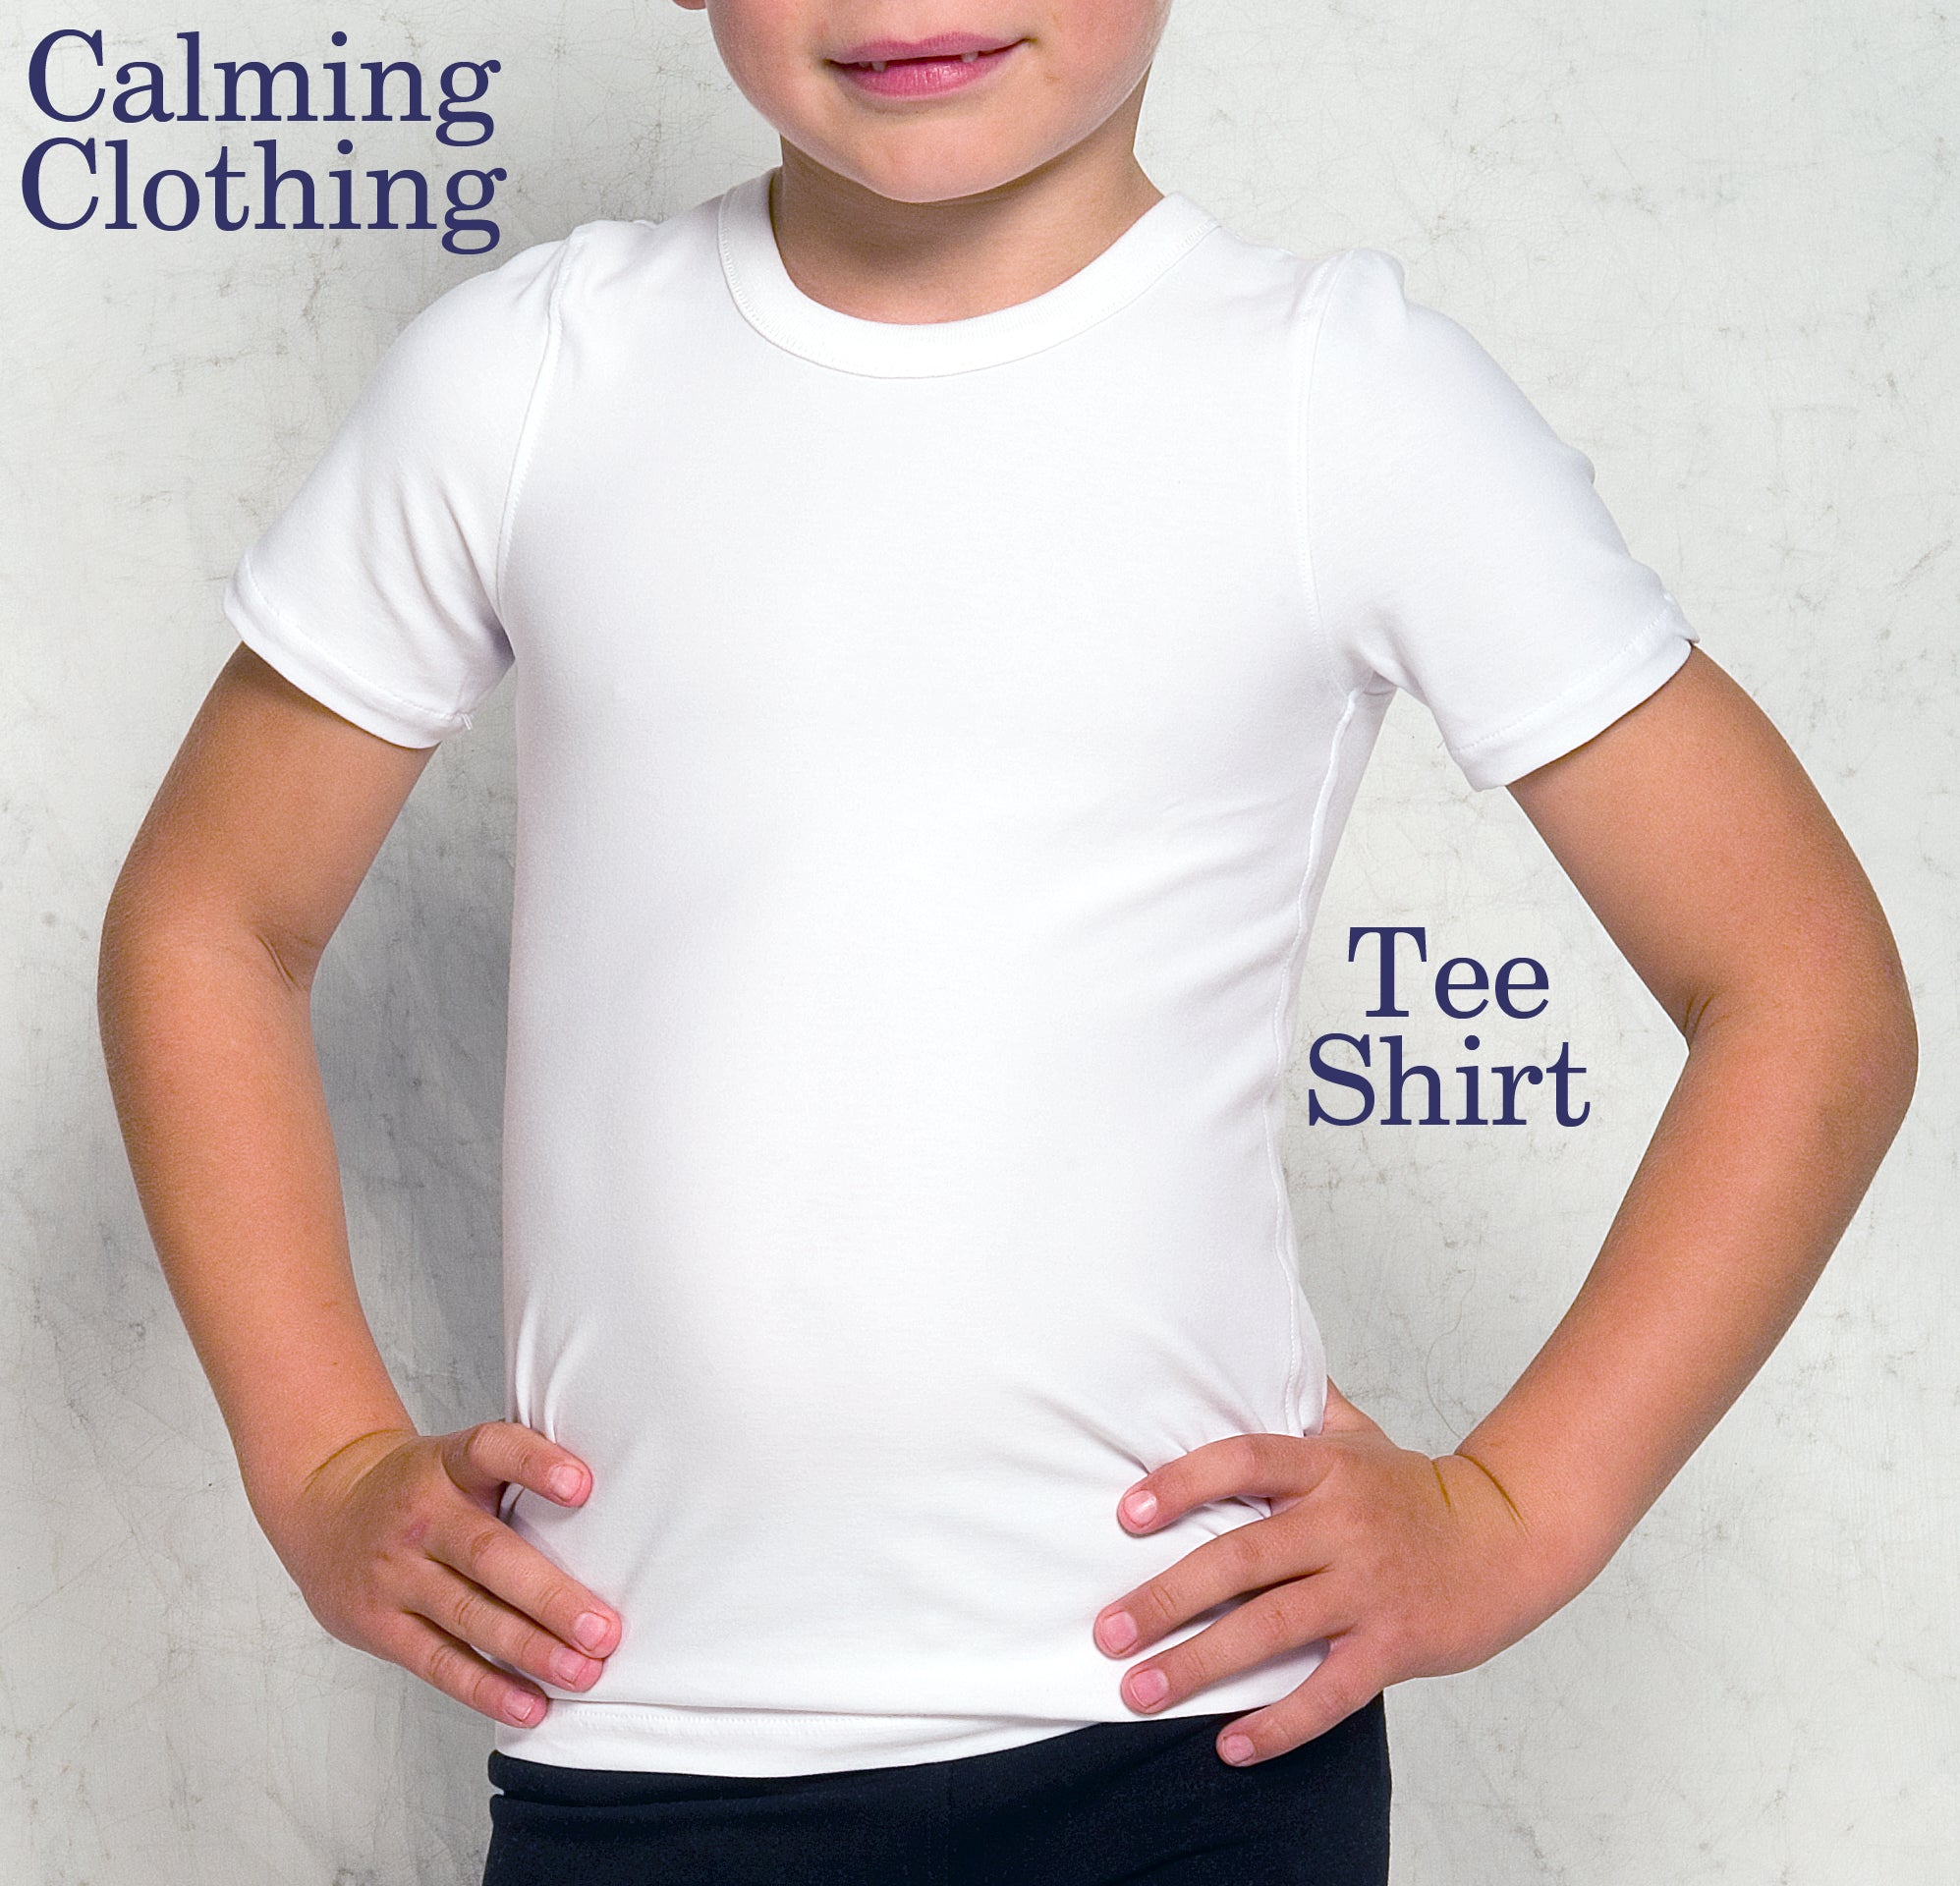 Calming Clothing Short Sleeve Tshirt (White)